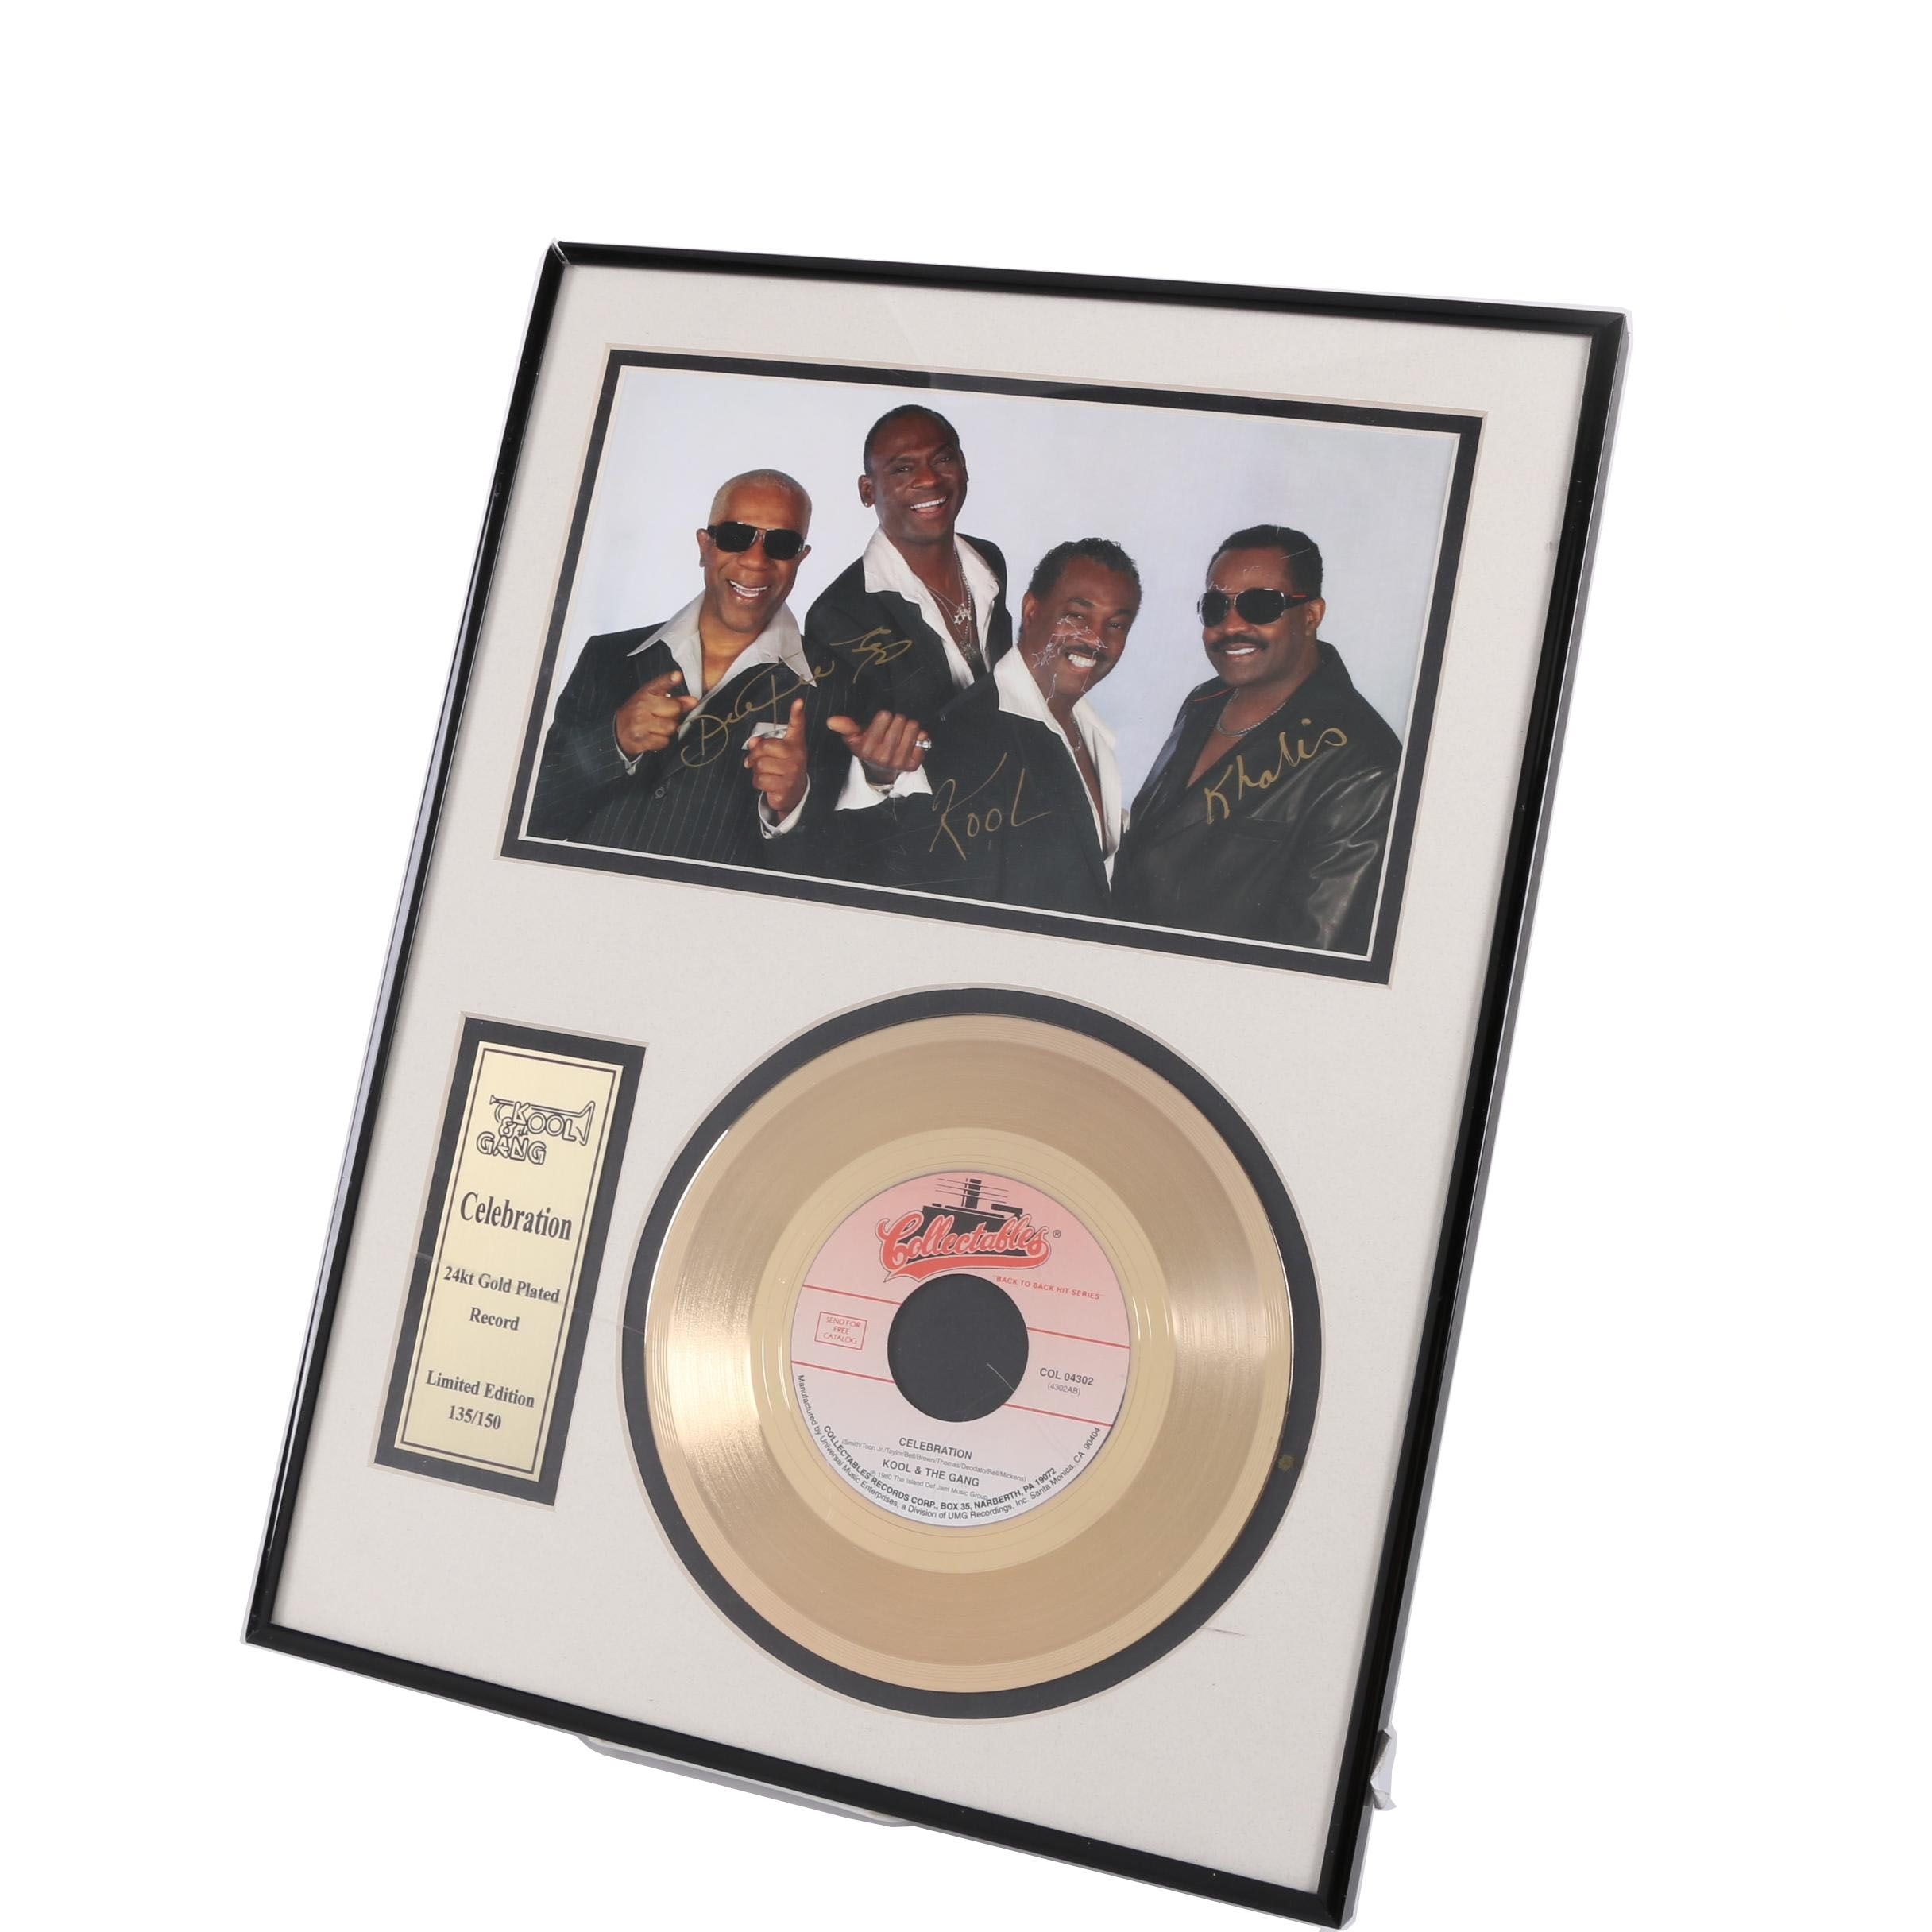 Limited Edition Kool & the Gang Autographed 24kt Gold Plated Record